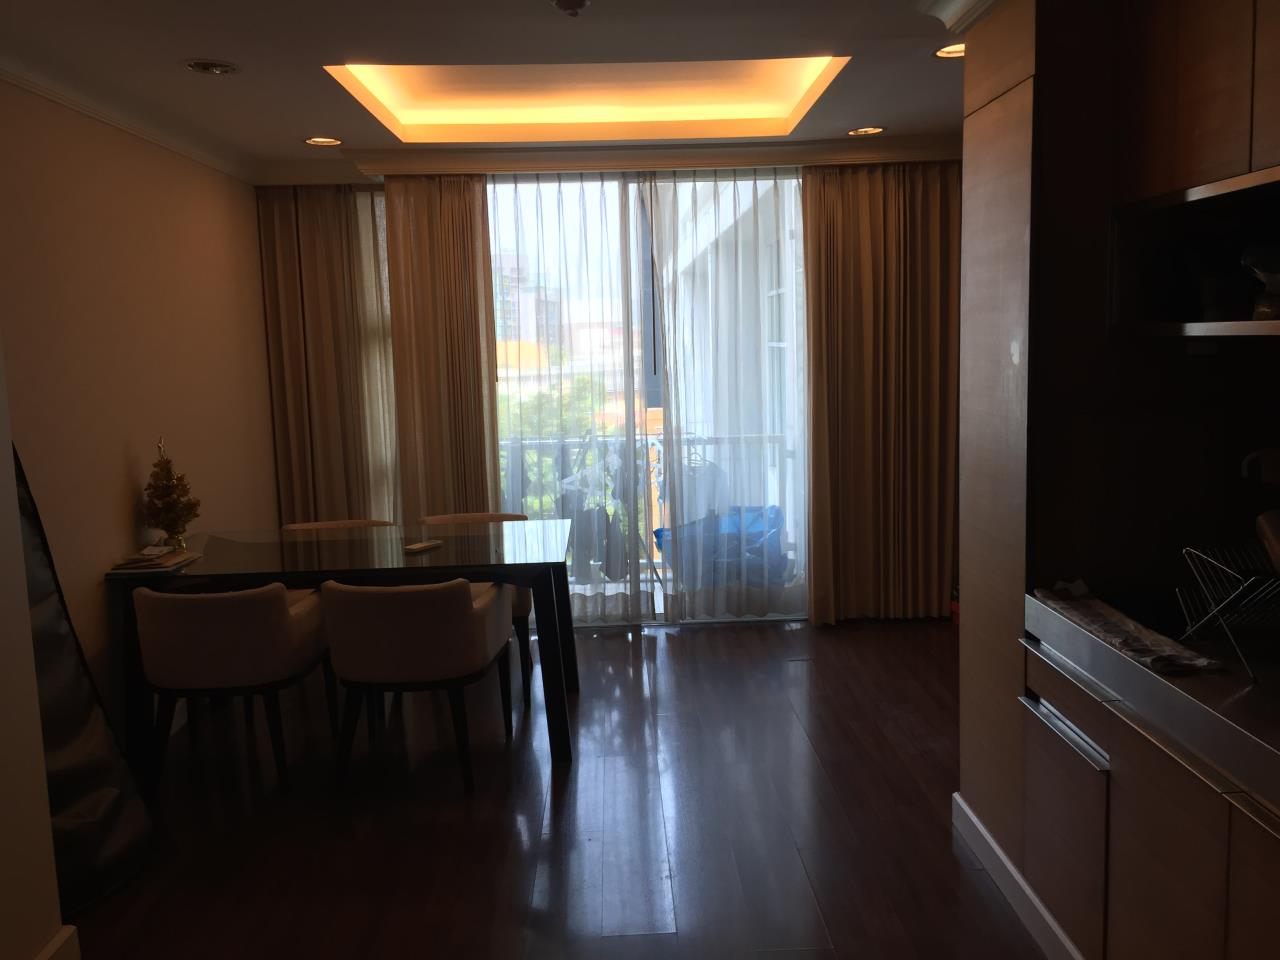 RE/MAX Exclusive Agency's D65 Condominium 2 Bedrooms, 70 Sqm., For Rent 27,000 THB!! 4